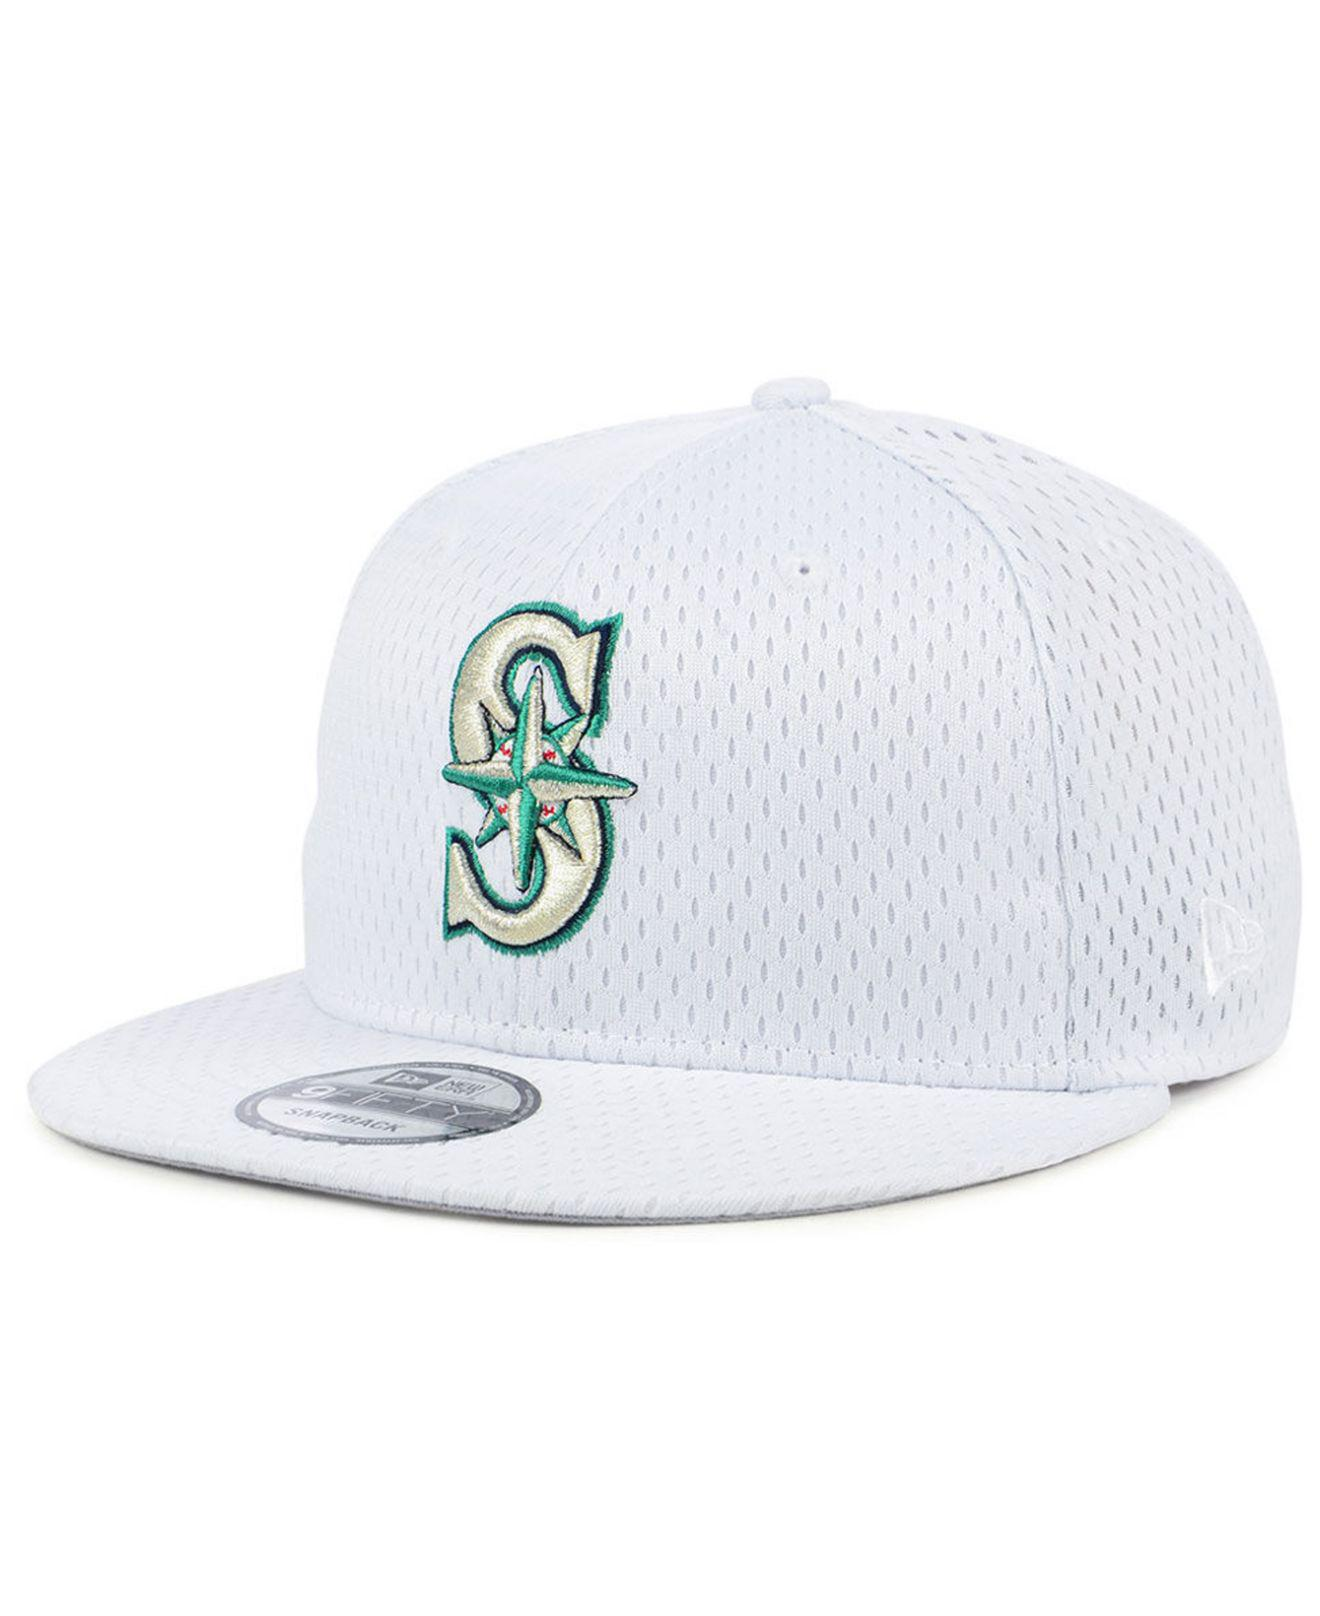 new product 300fc 65a3e ... discount ktz white seattle mariners batting practice mesh 9fifty  snapback cap for men lyst. view